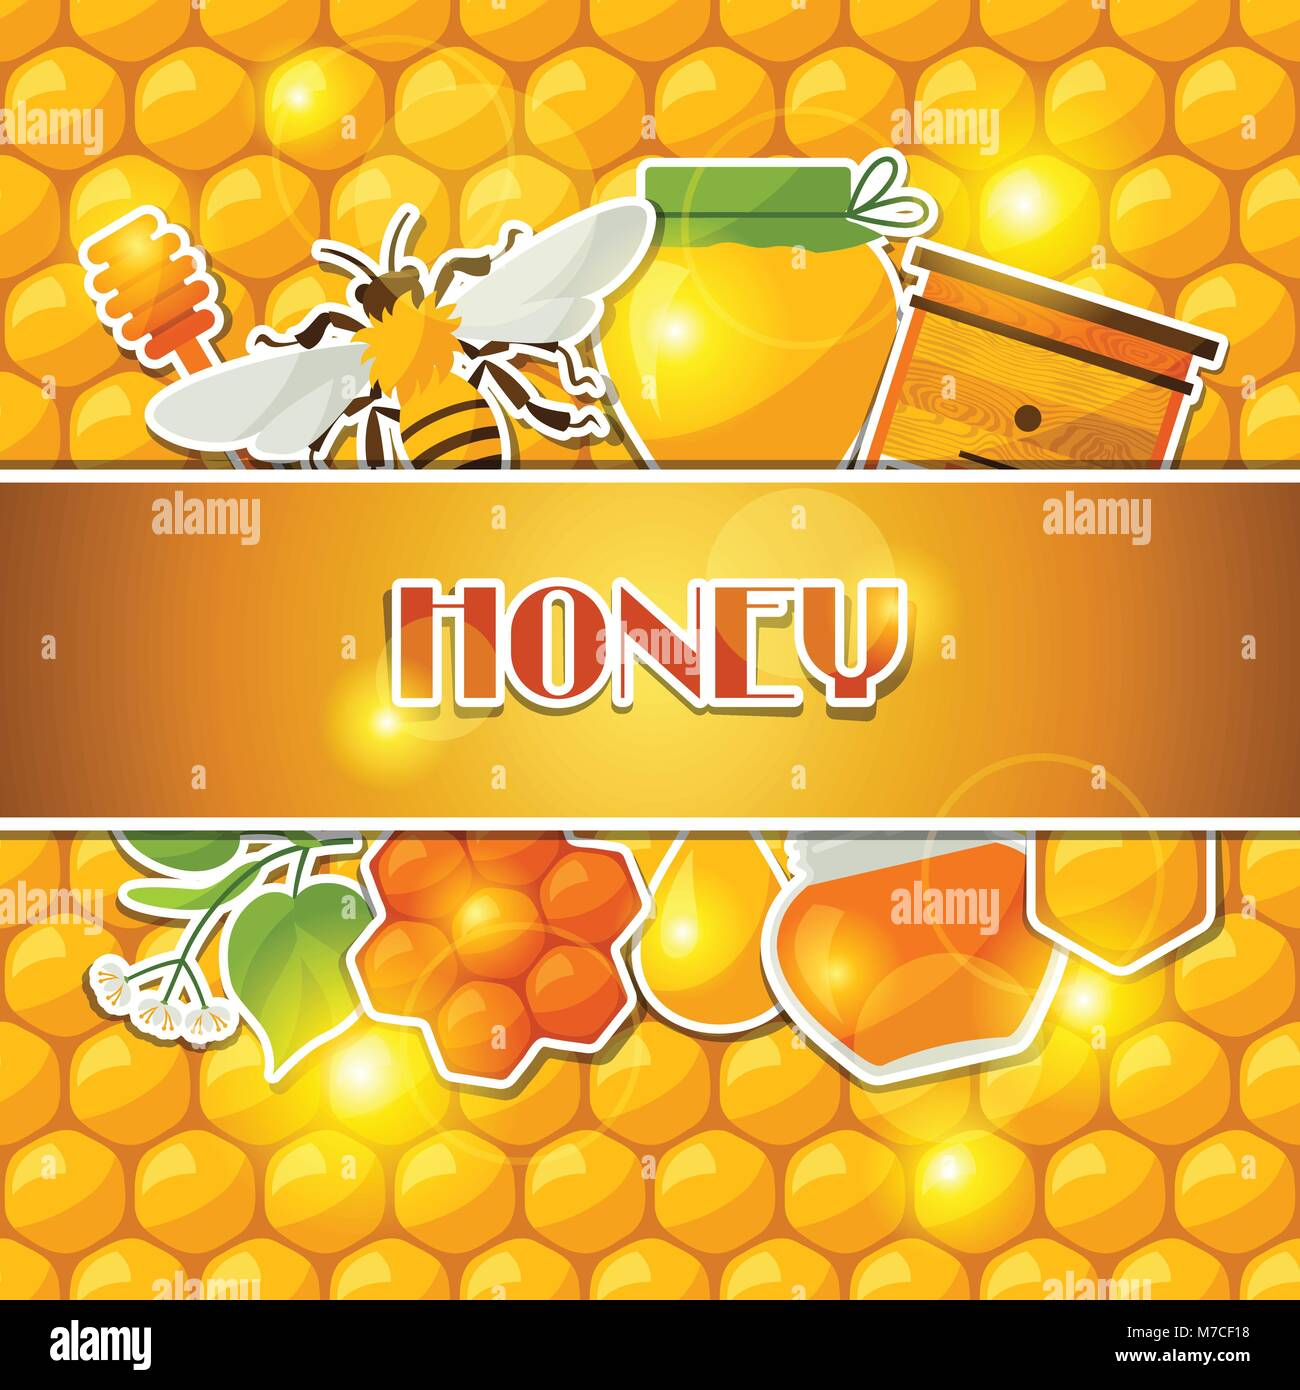 Background design with honey and bee stickers - Stock Vector